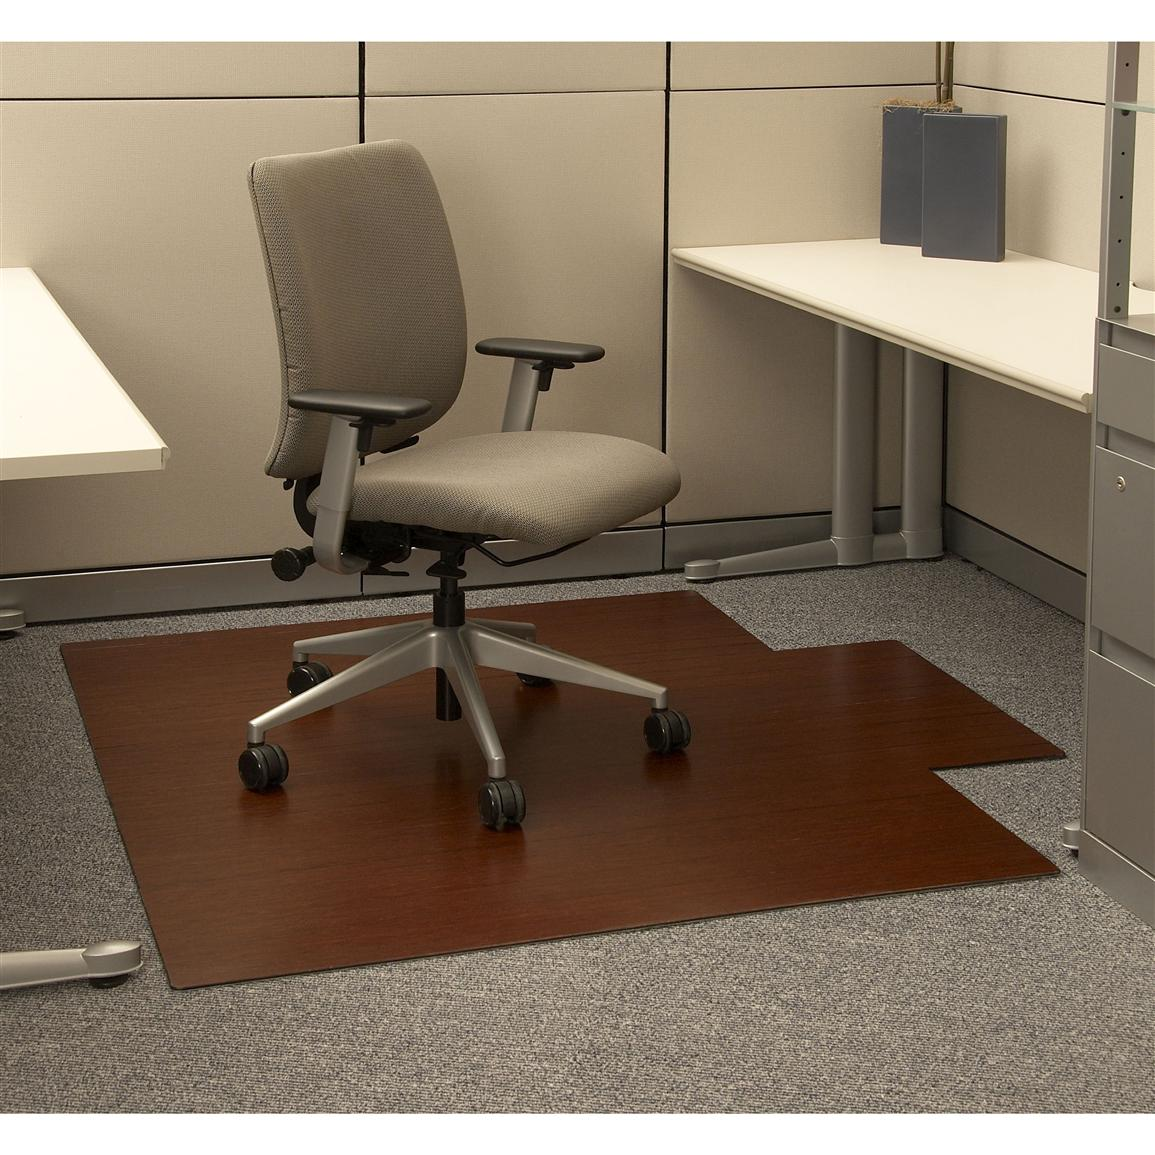 anji mountain bamboo rug co.® bamboo roll - up office chair mat